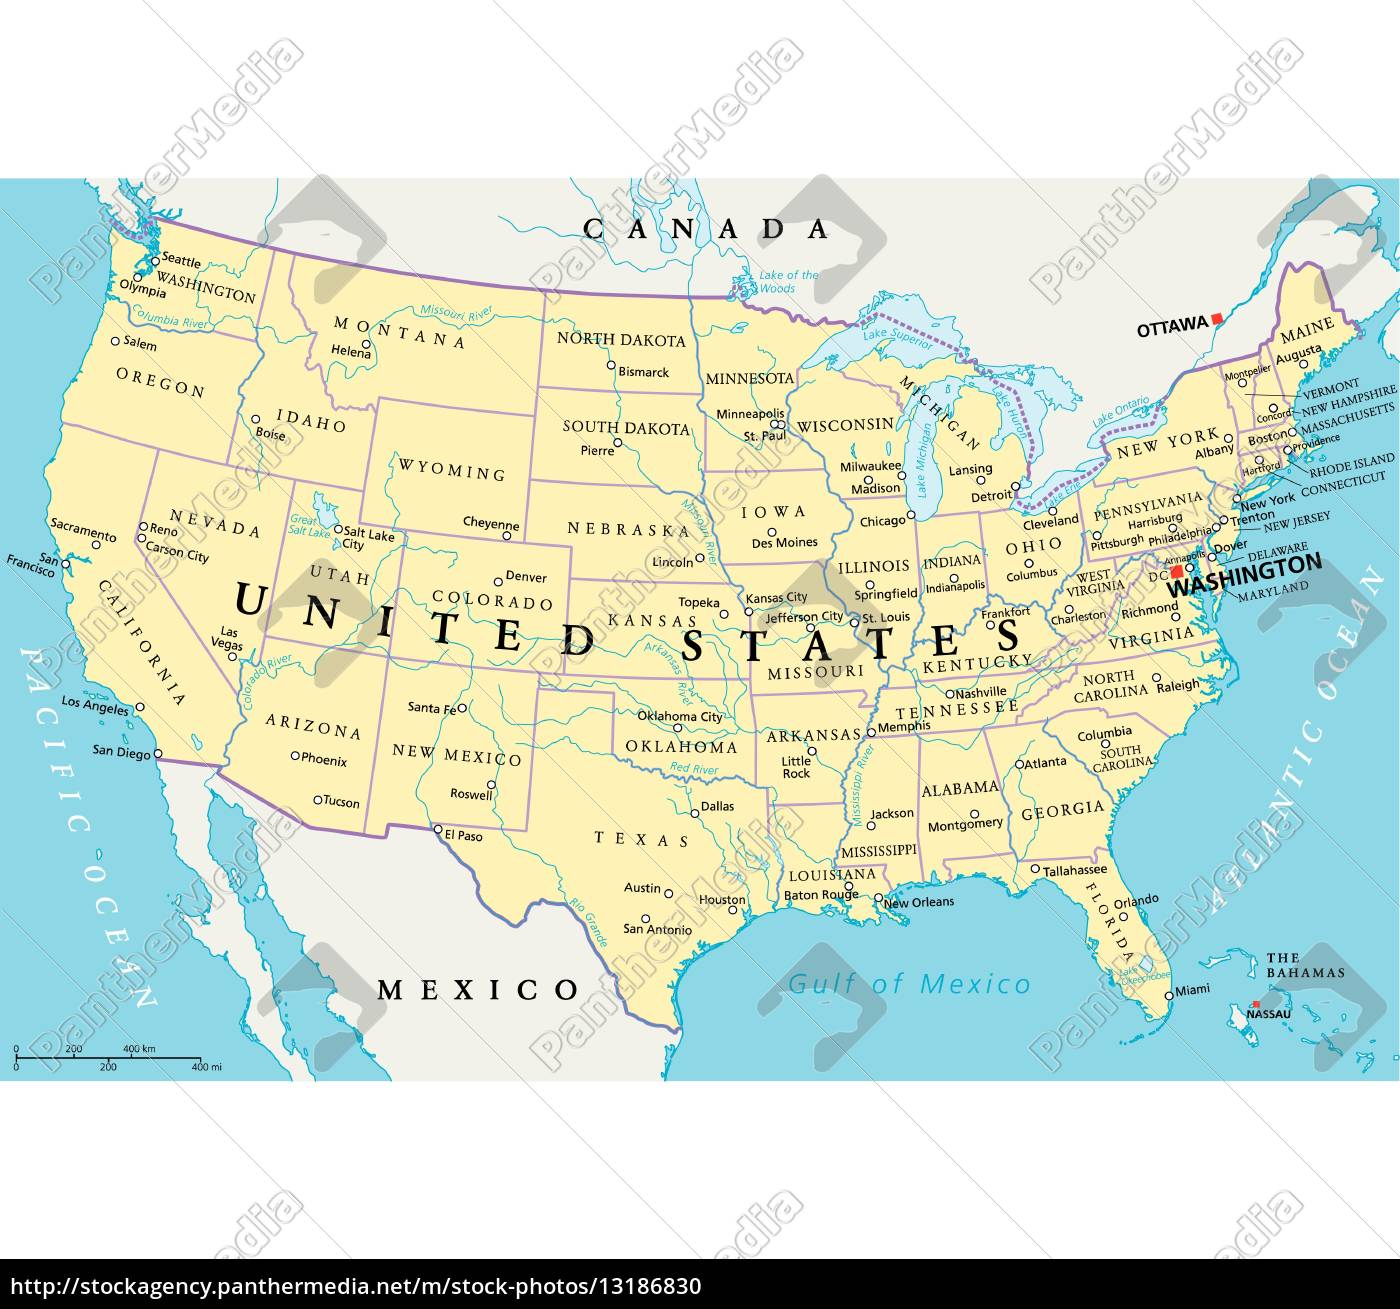 united states of america political map - Stockfoto - #13186830 ...